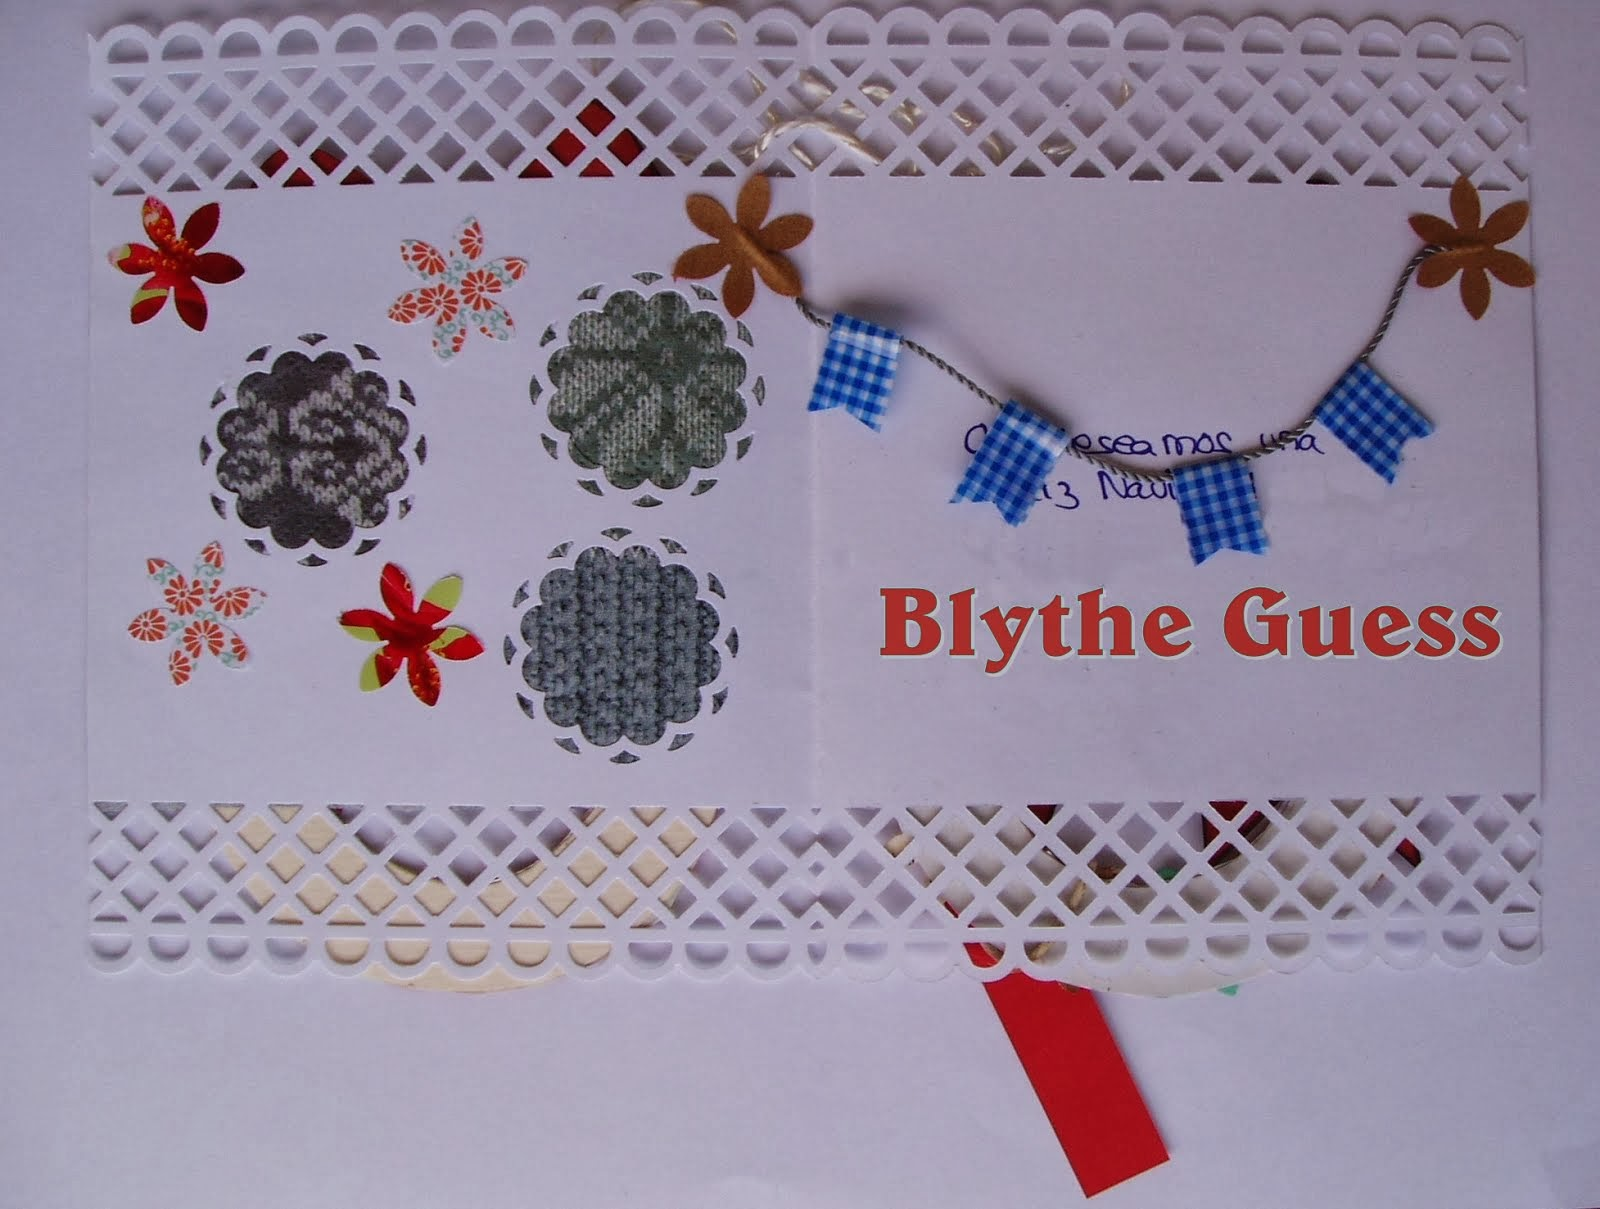 by Blythe Guess